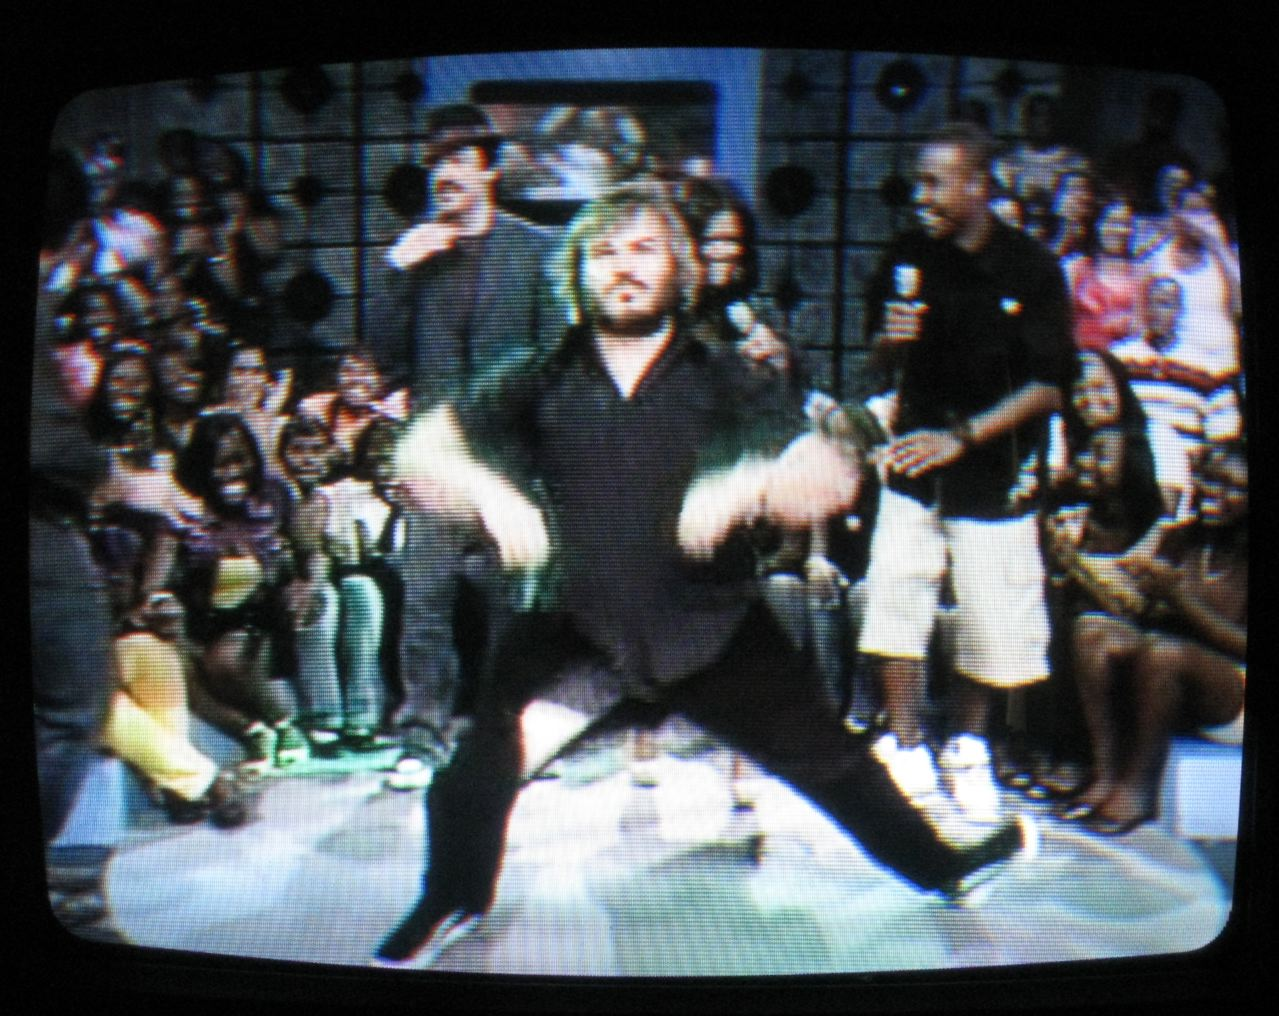 Jack Black dancing on 106th and Park